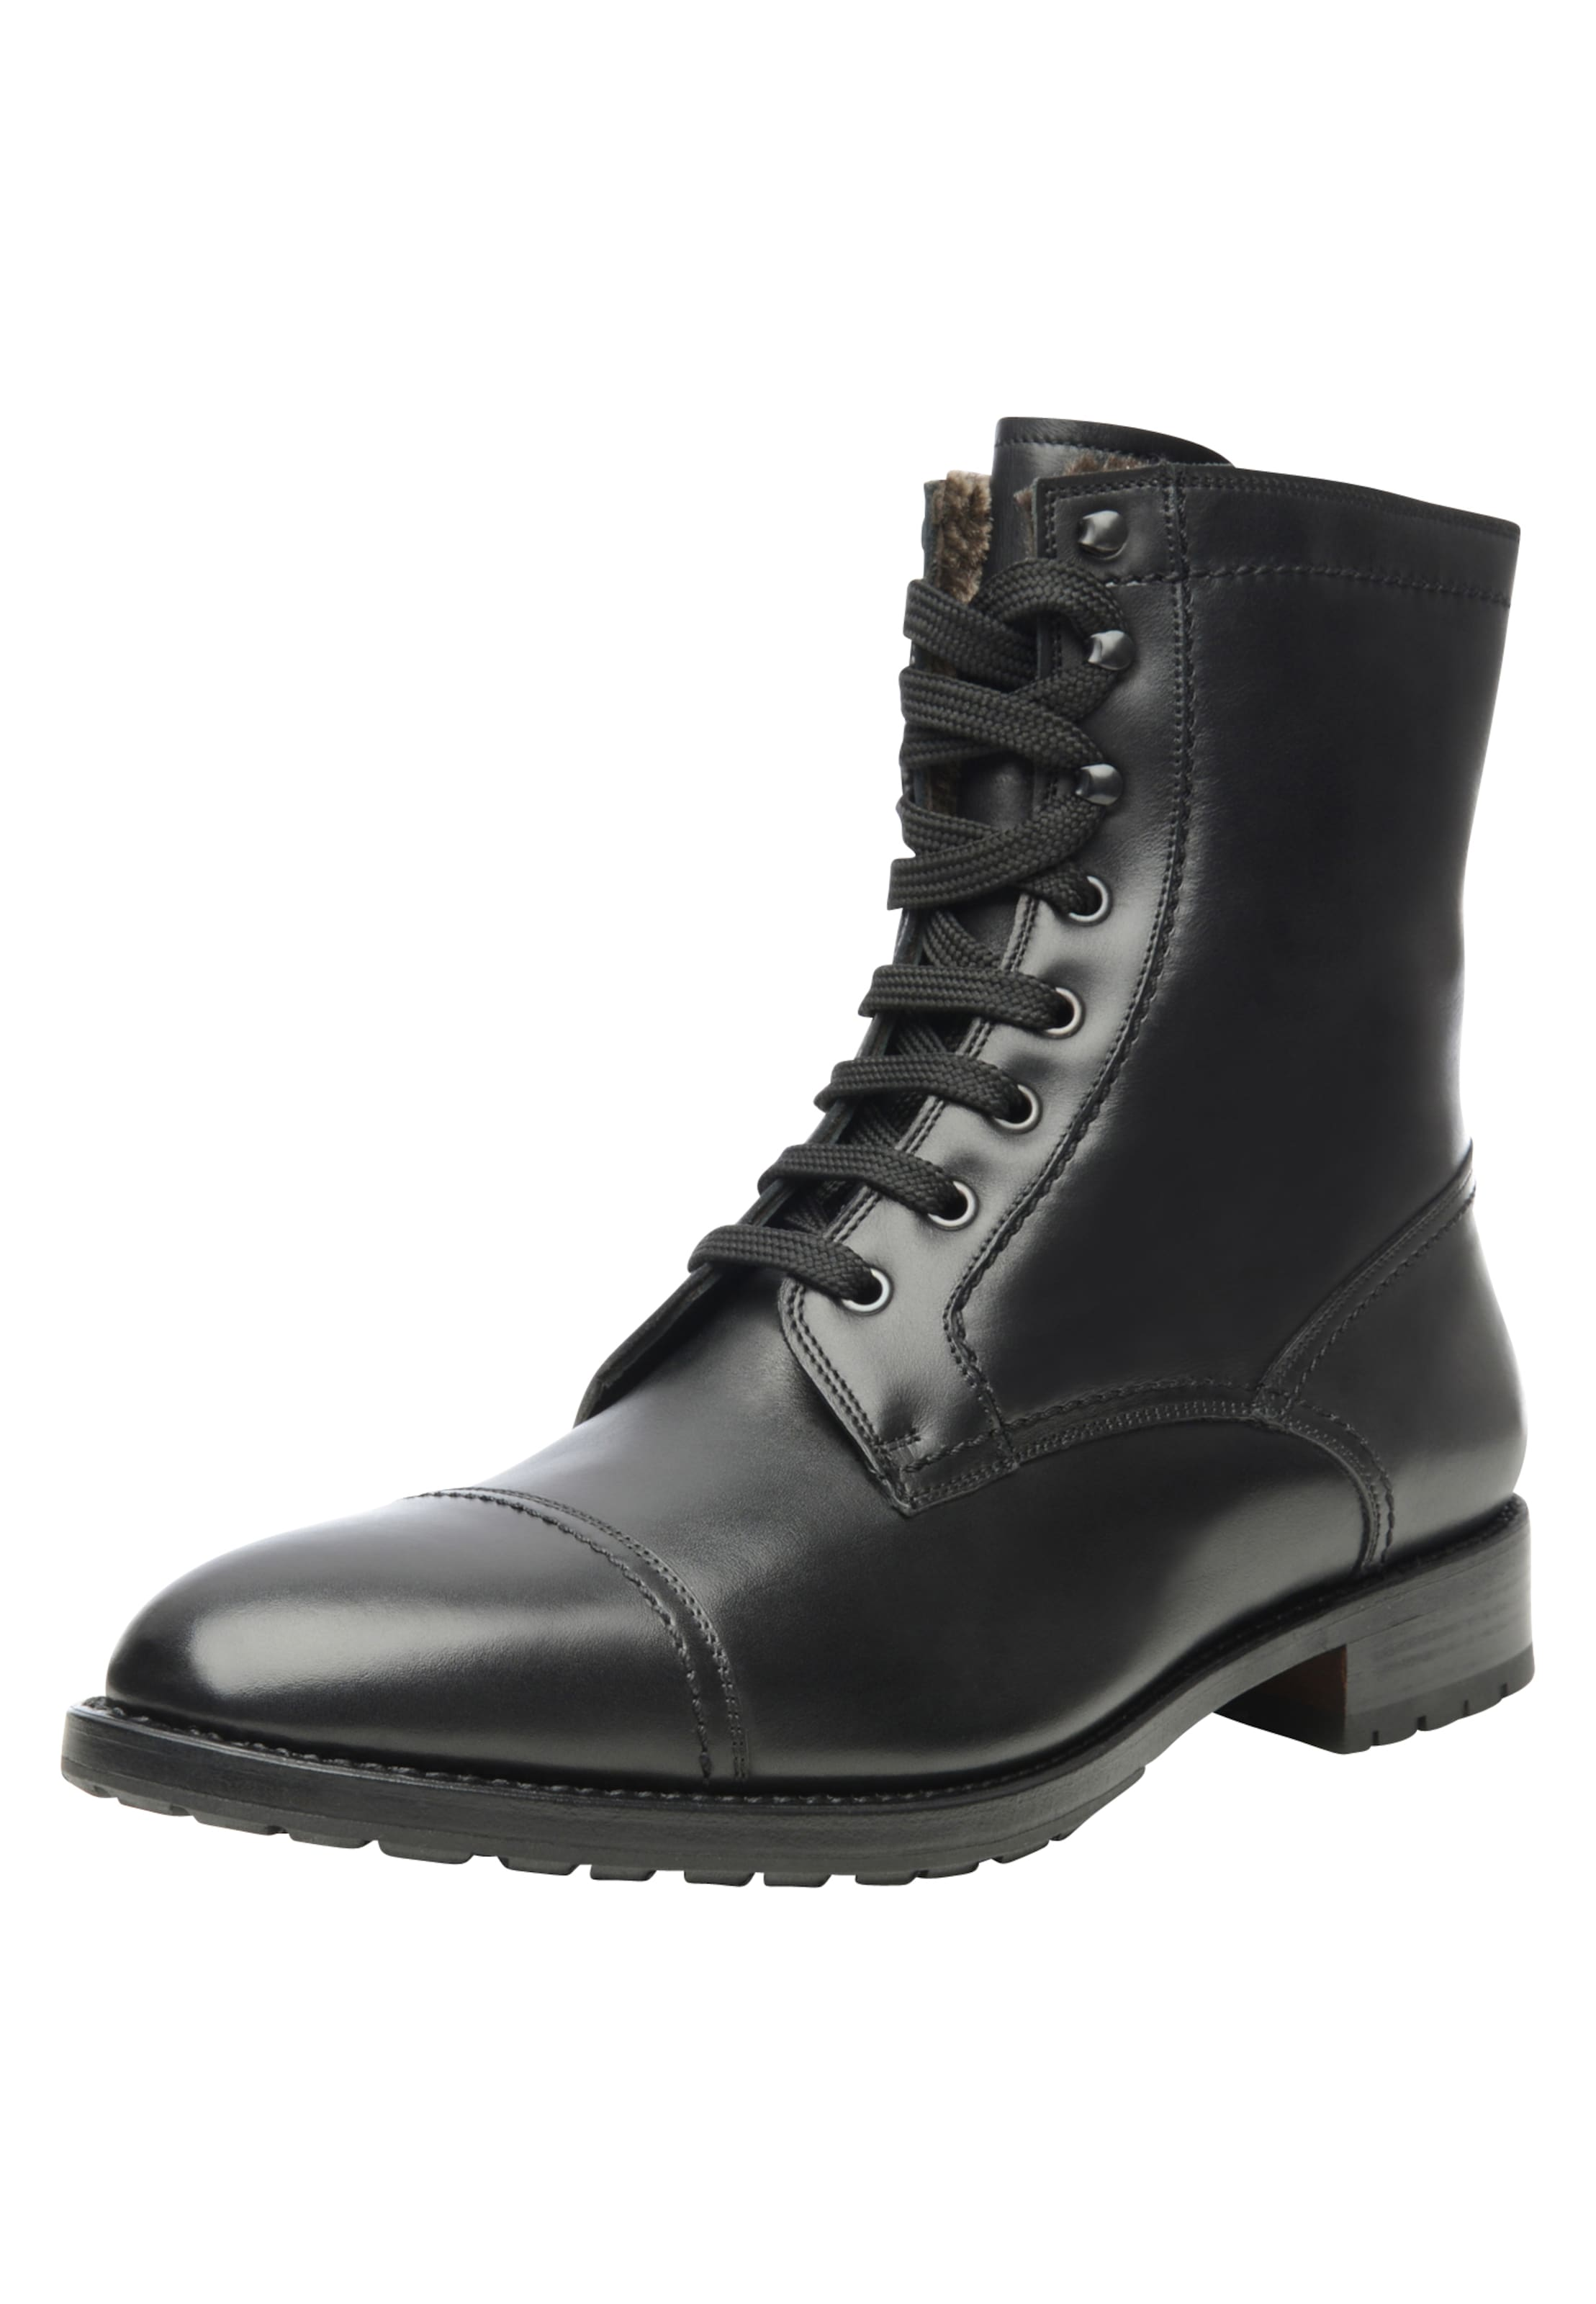 SHOEPASSION Winterboots  No. 692